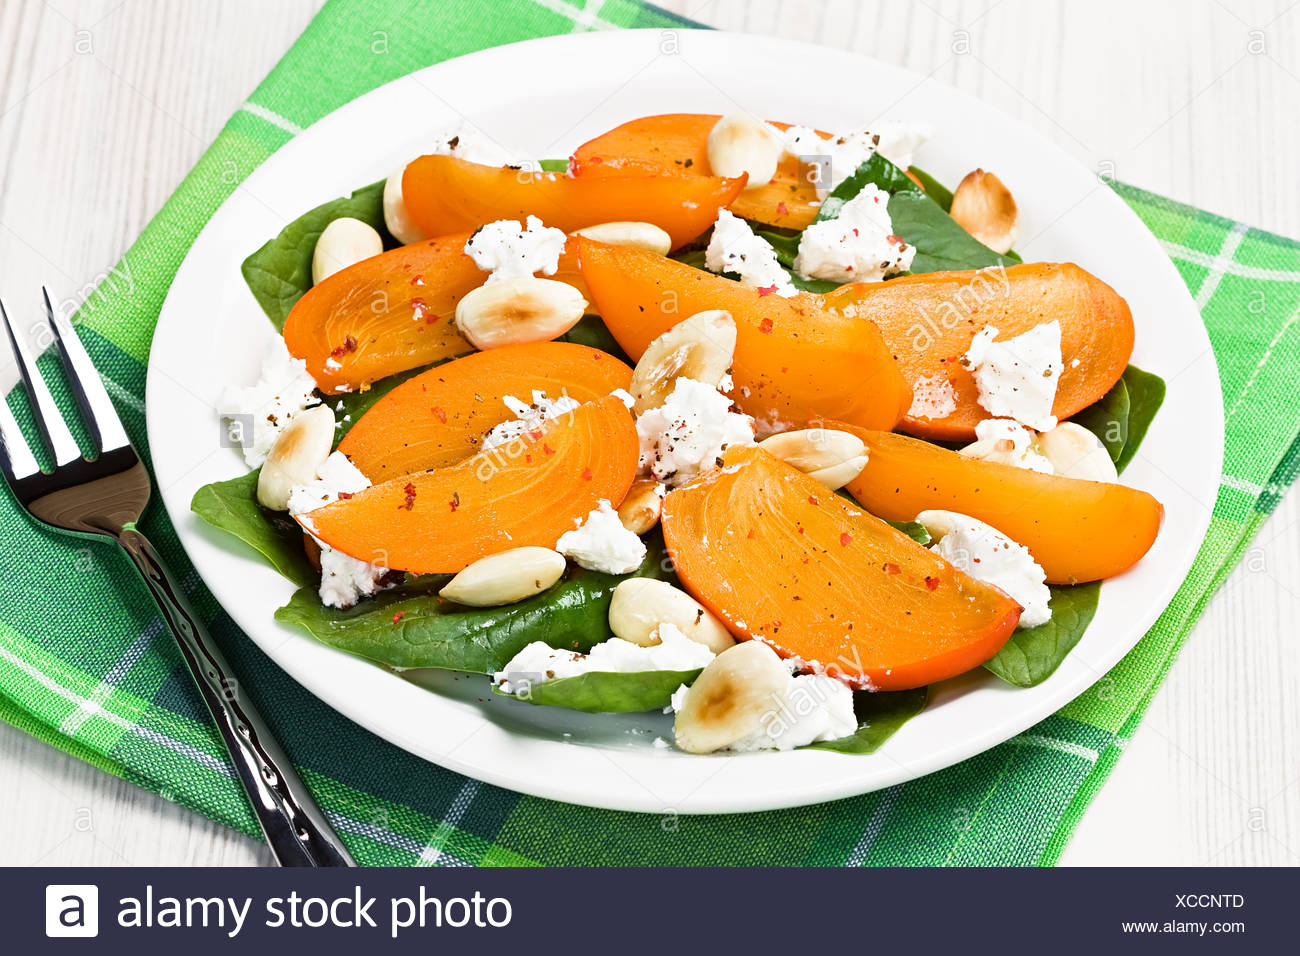 Spinach persimmon goat cheese salad with almonds - Stock Image